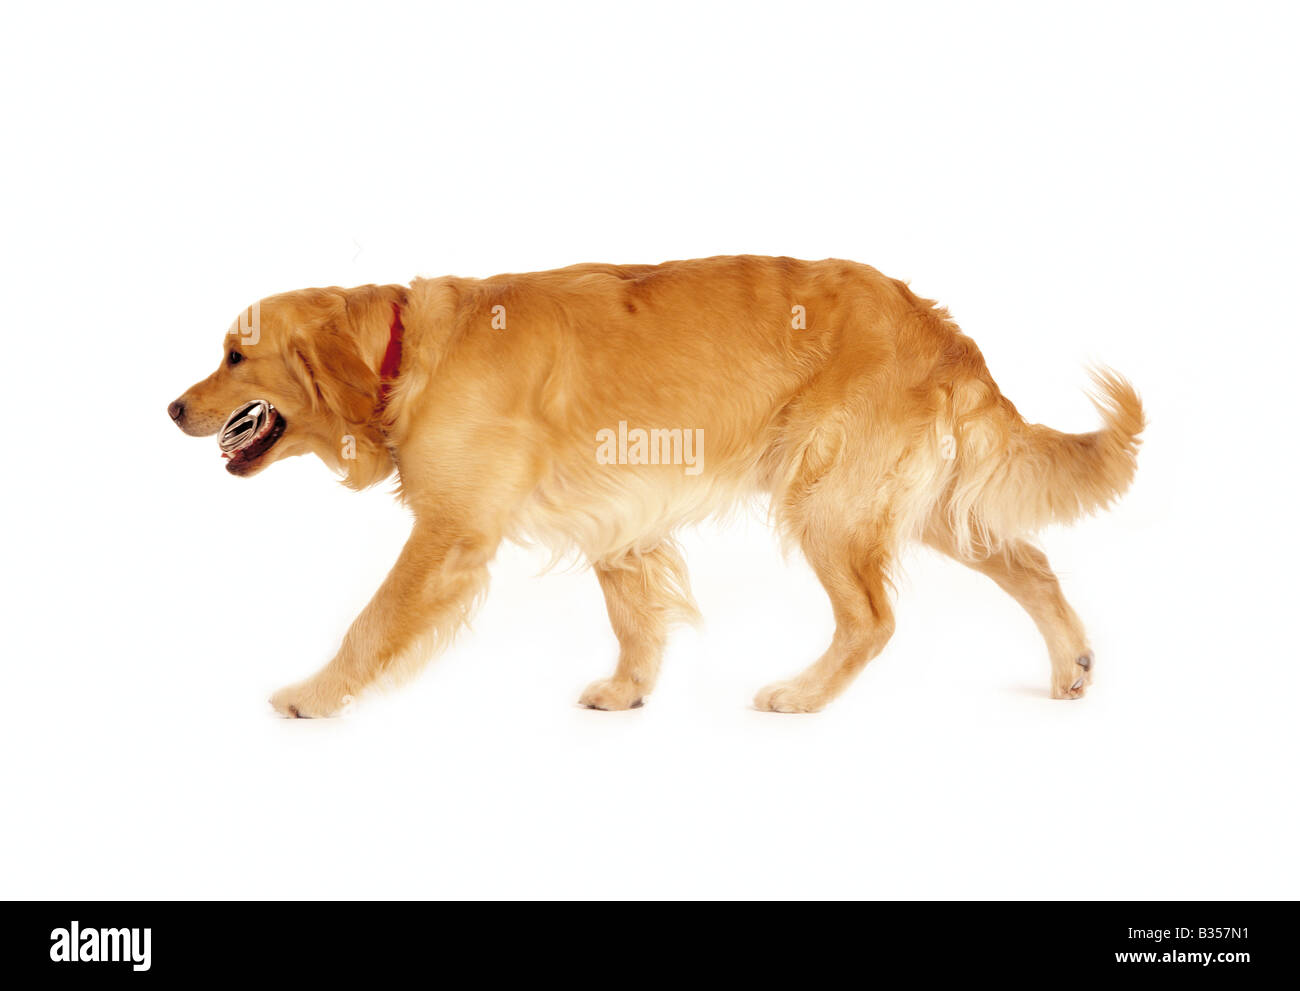 landscape format colour picture of a golden retriever carrying a newspaper - Stock Image